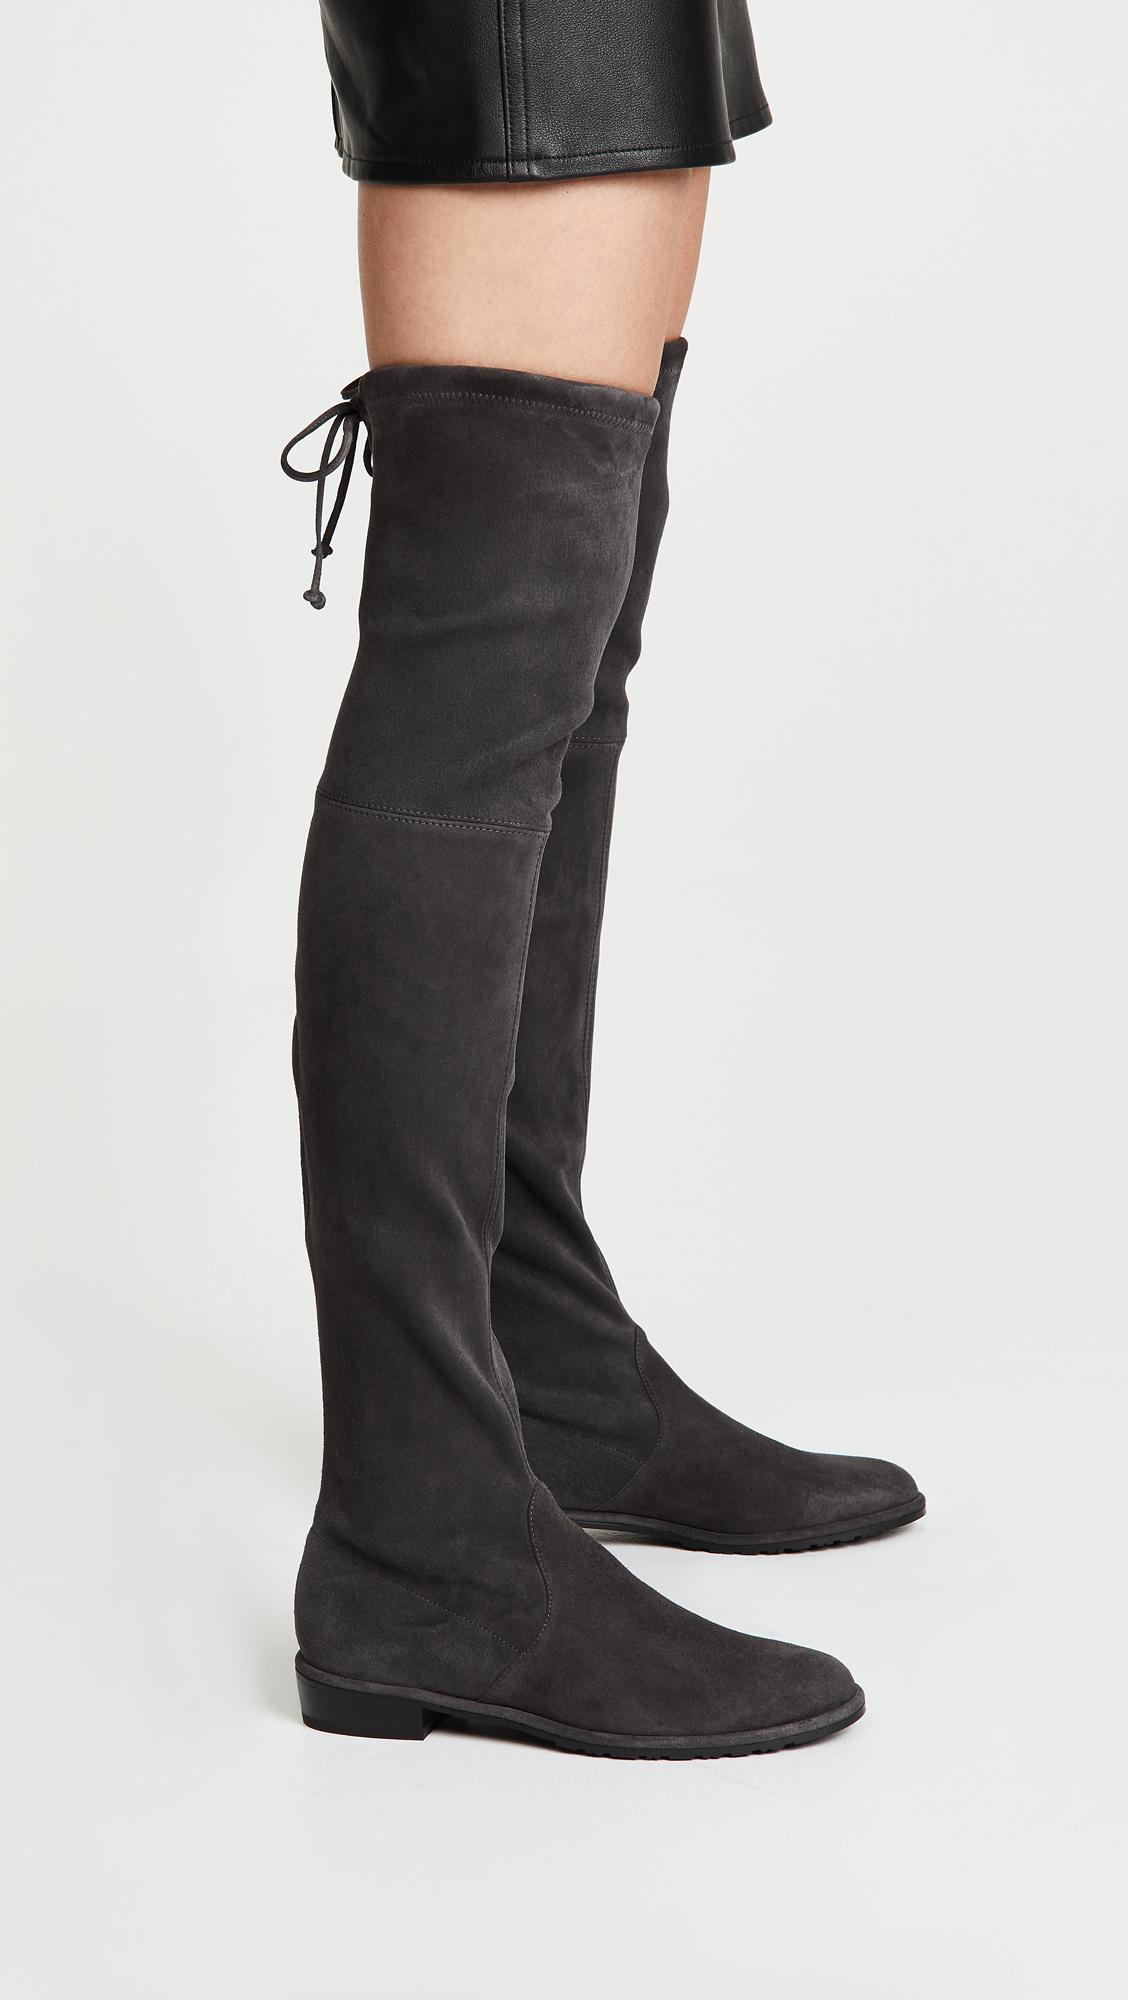 7b180df639a Stuart Weitzman - Black Lowland Over The Knee Boots - Lyst. View fullscreen